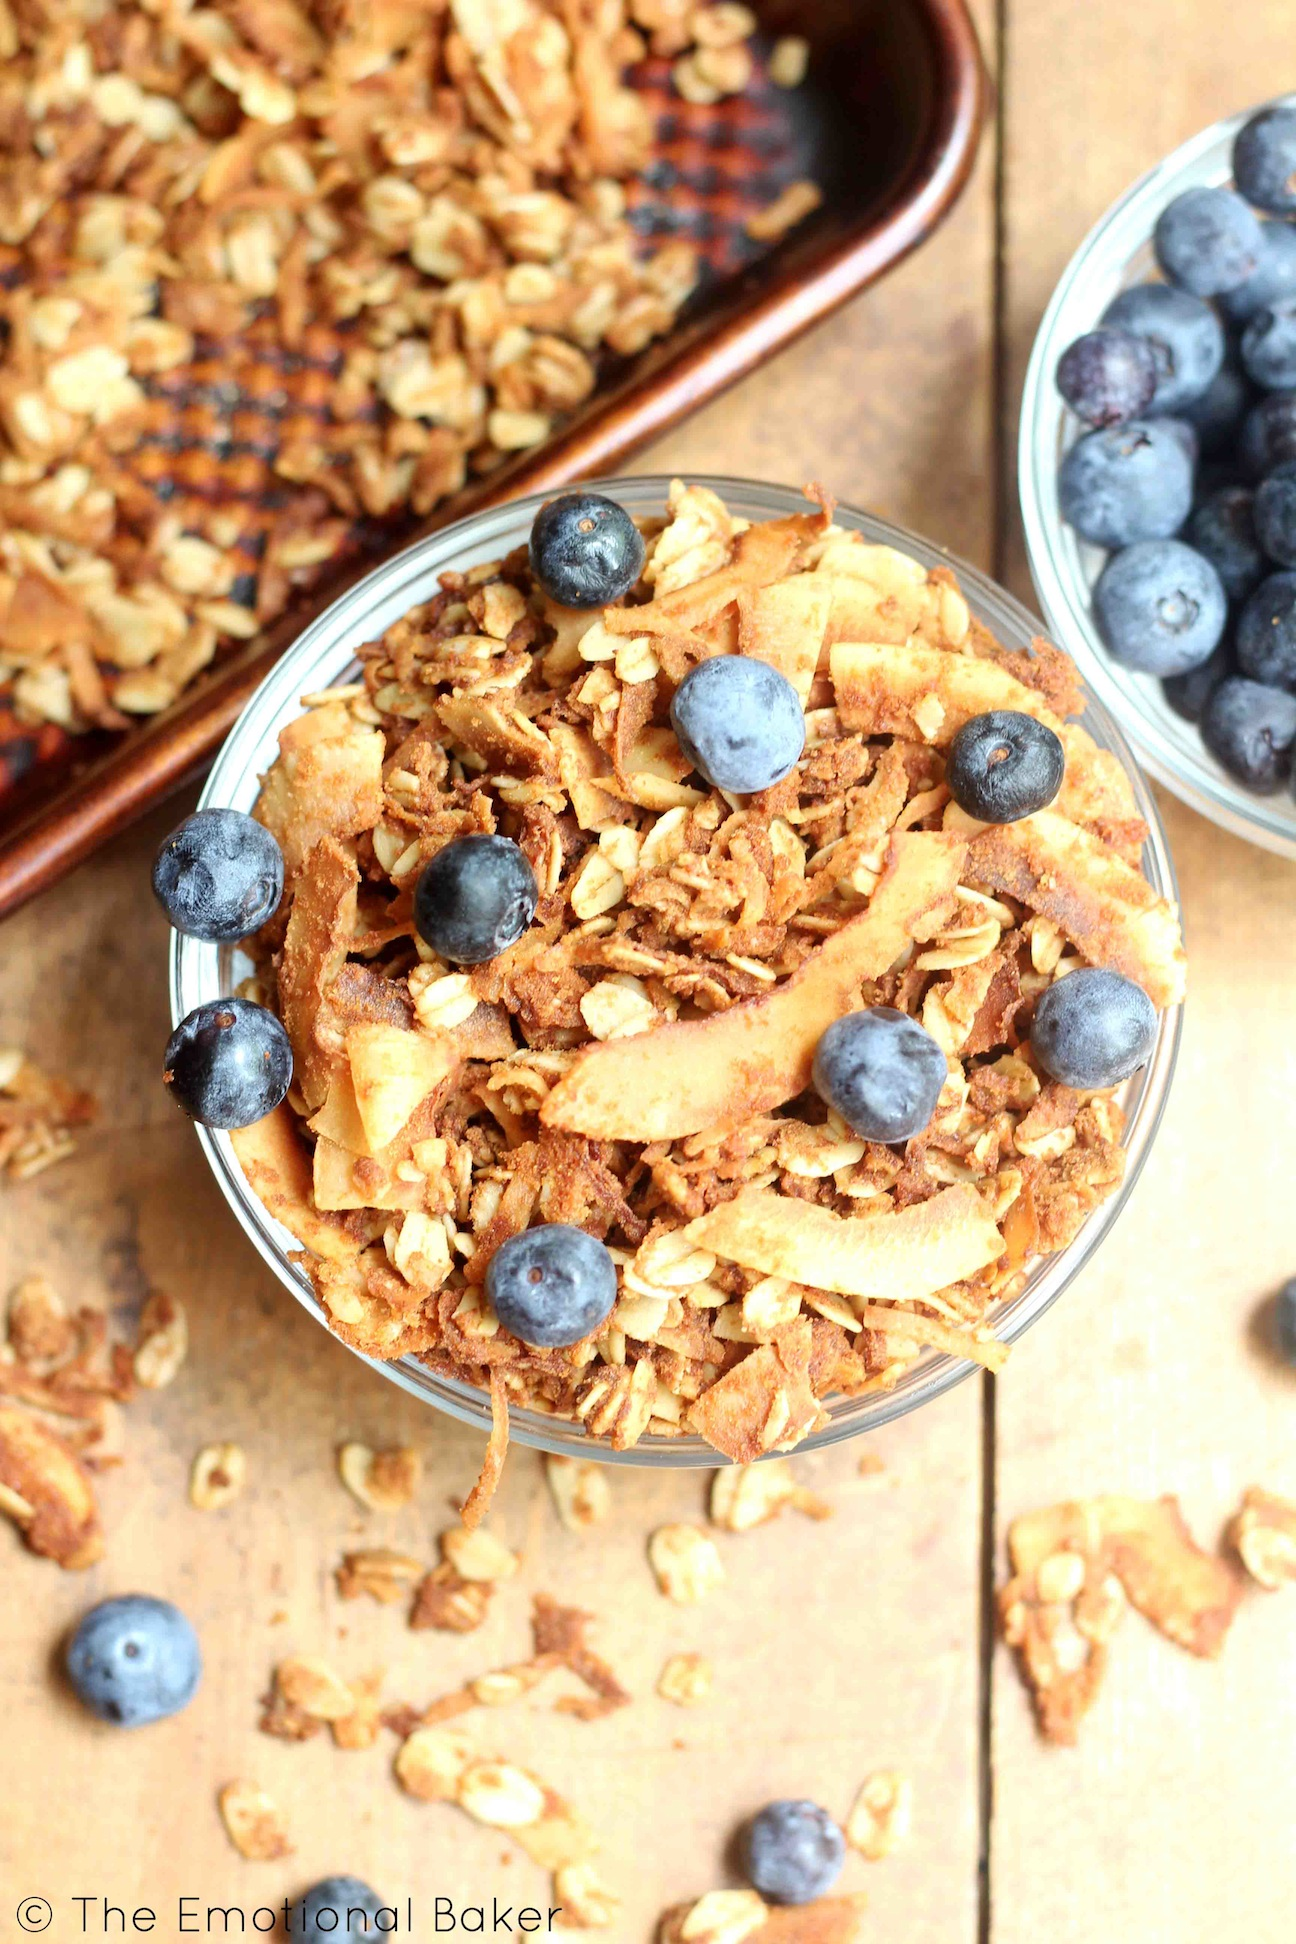 The ultimate coconut lover's granola - made with coconut oil, coconut flour, coconut sugar - and of course - lots of crunchy coconut flakes!